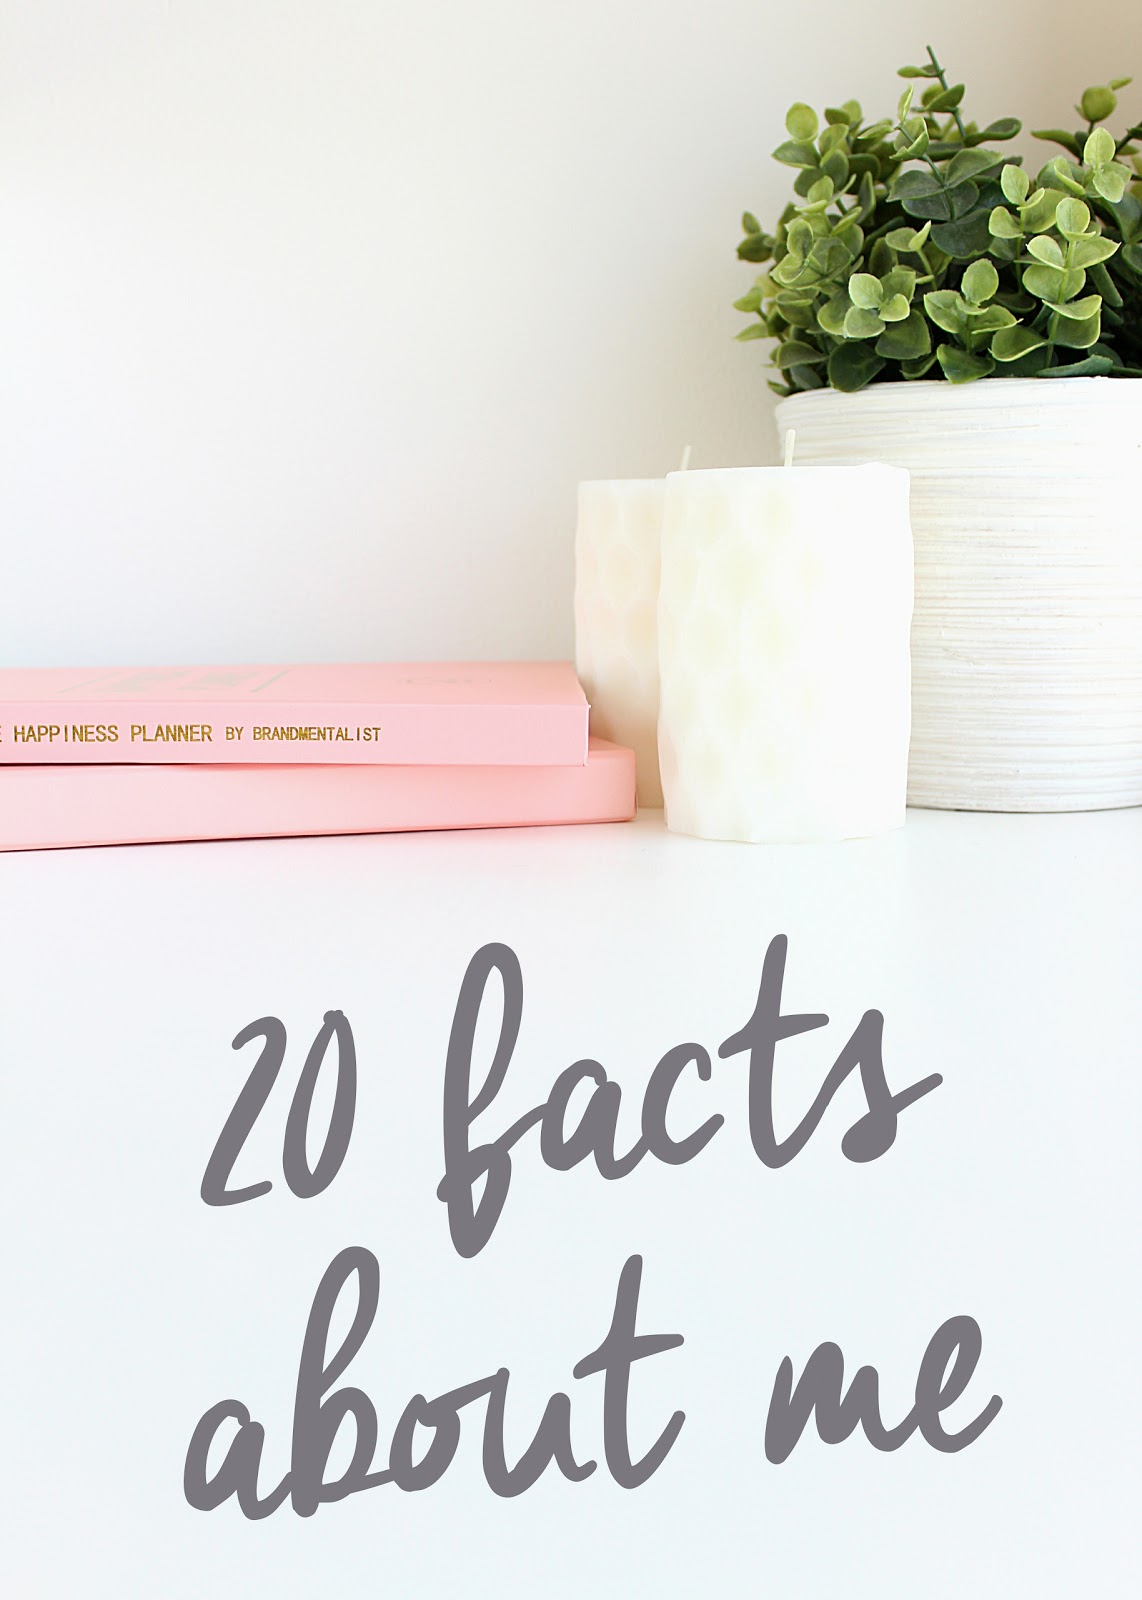 Life in Excess Blog - 20 Facts About Me